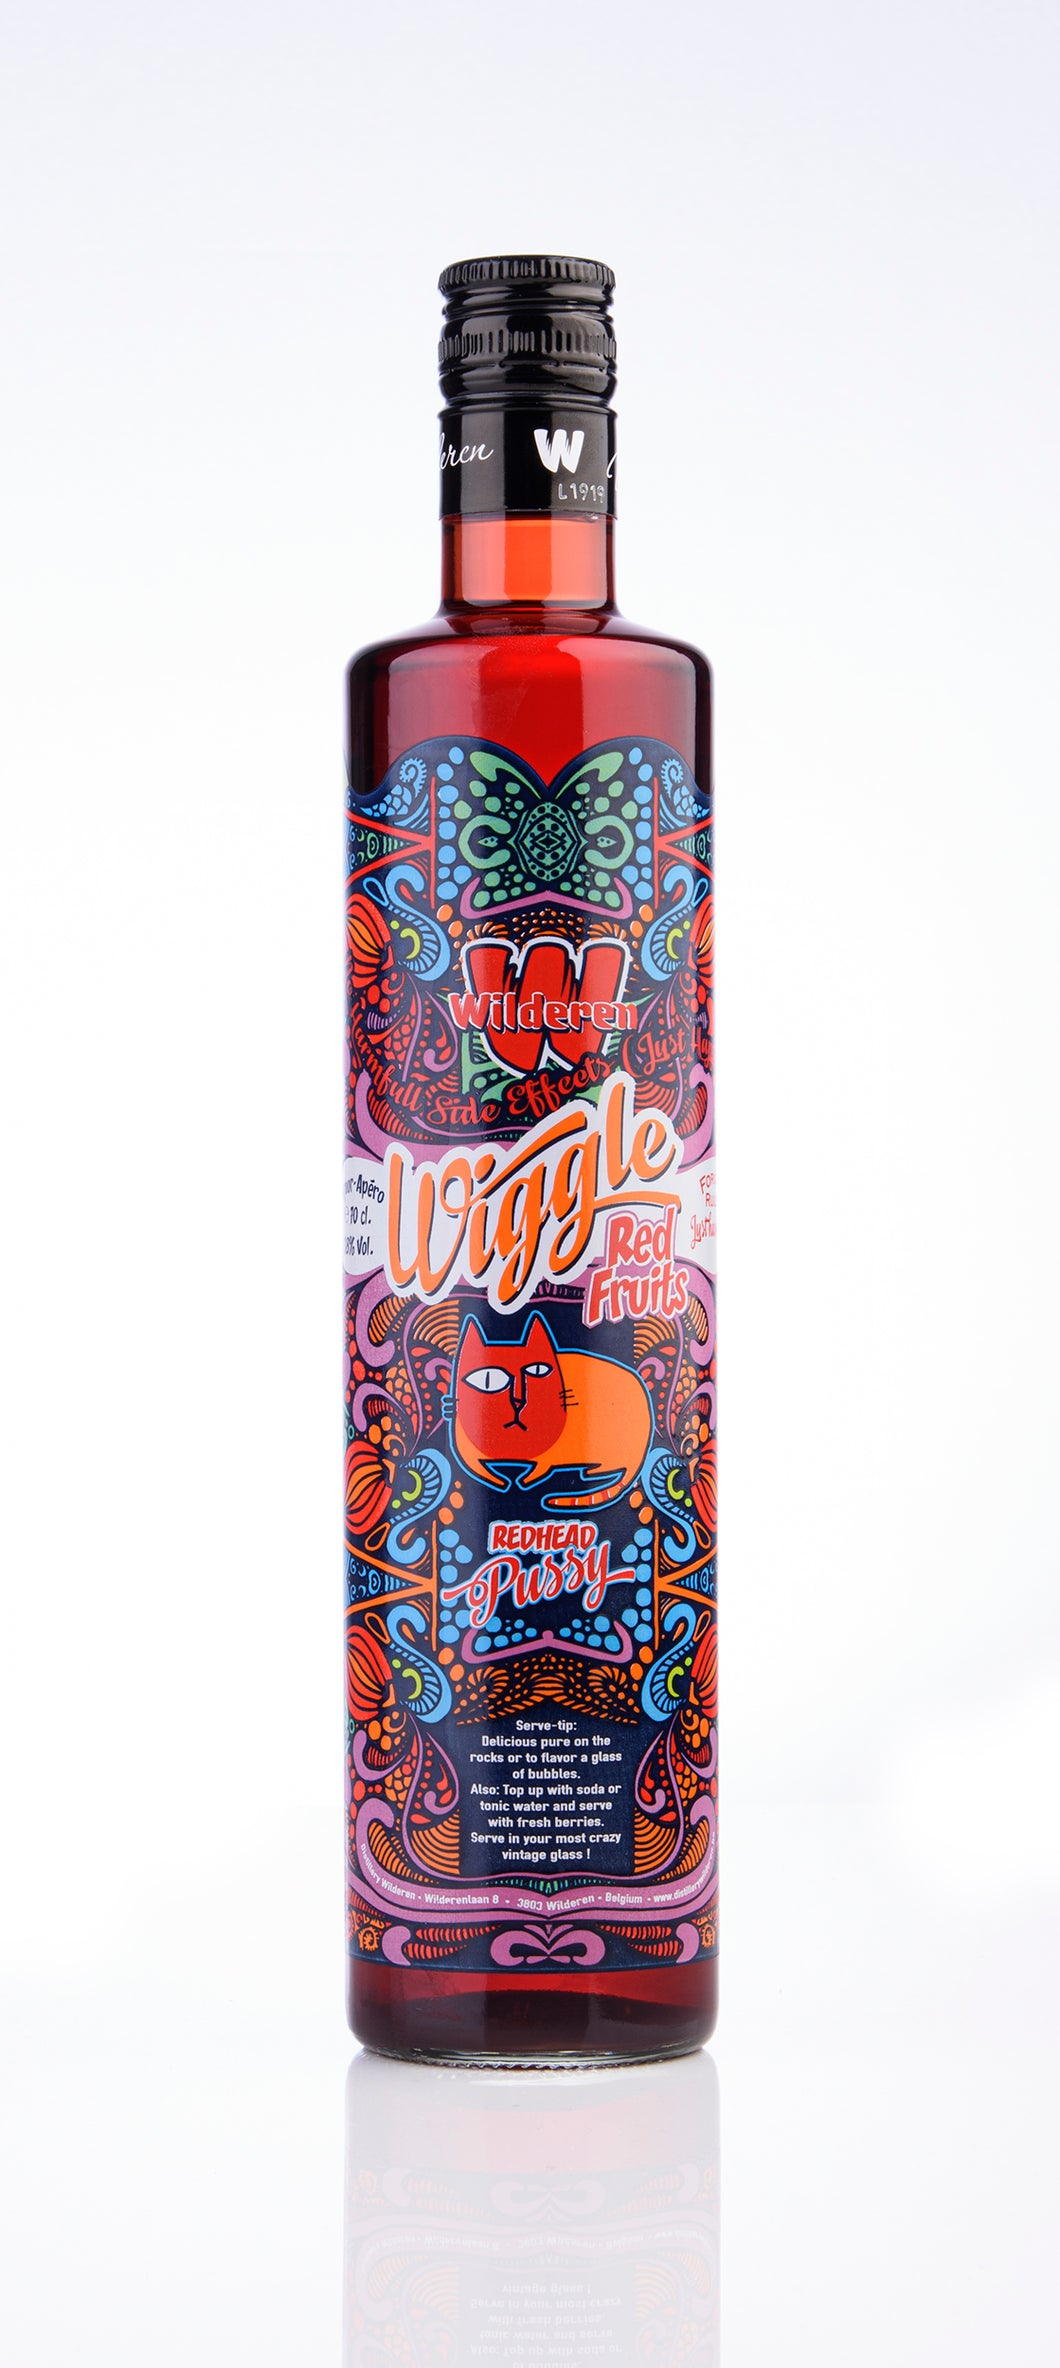 Wiggle Apéro Red Fruits 70cl